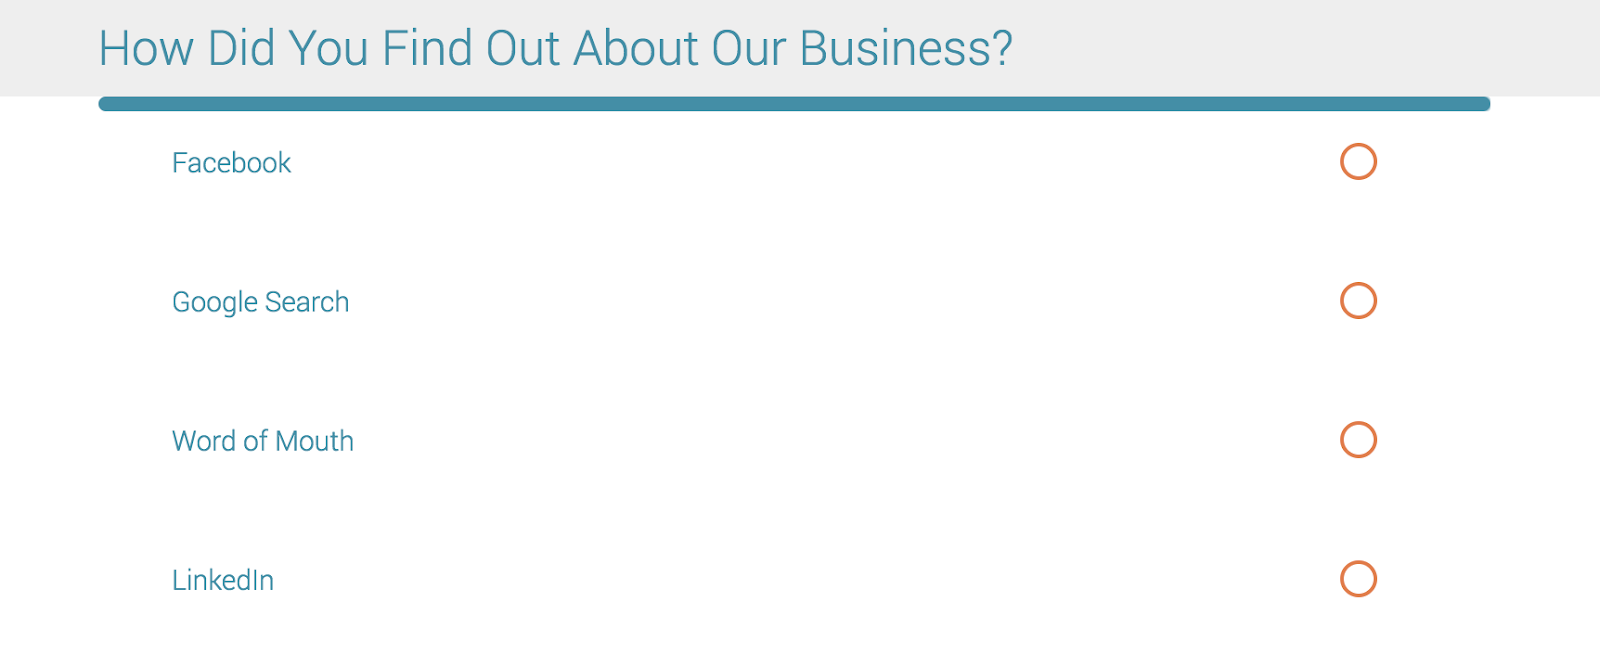 Screenshot of how did you find out about our business in-house advertising research